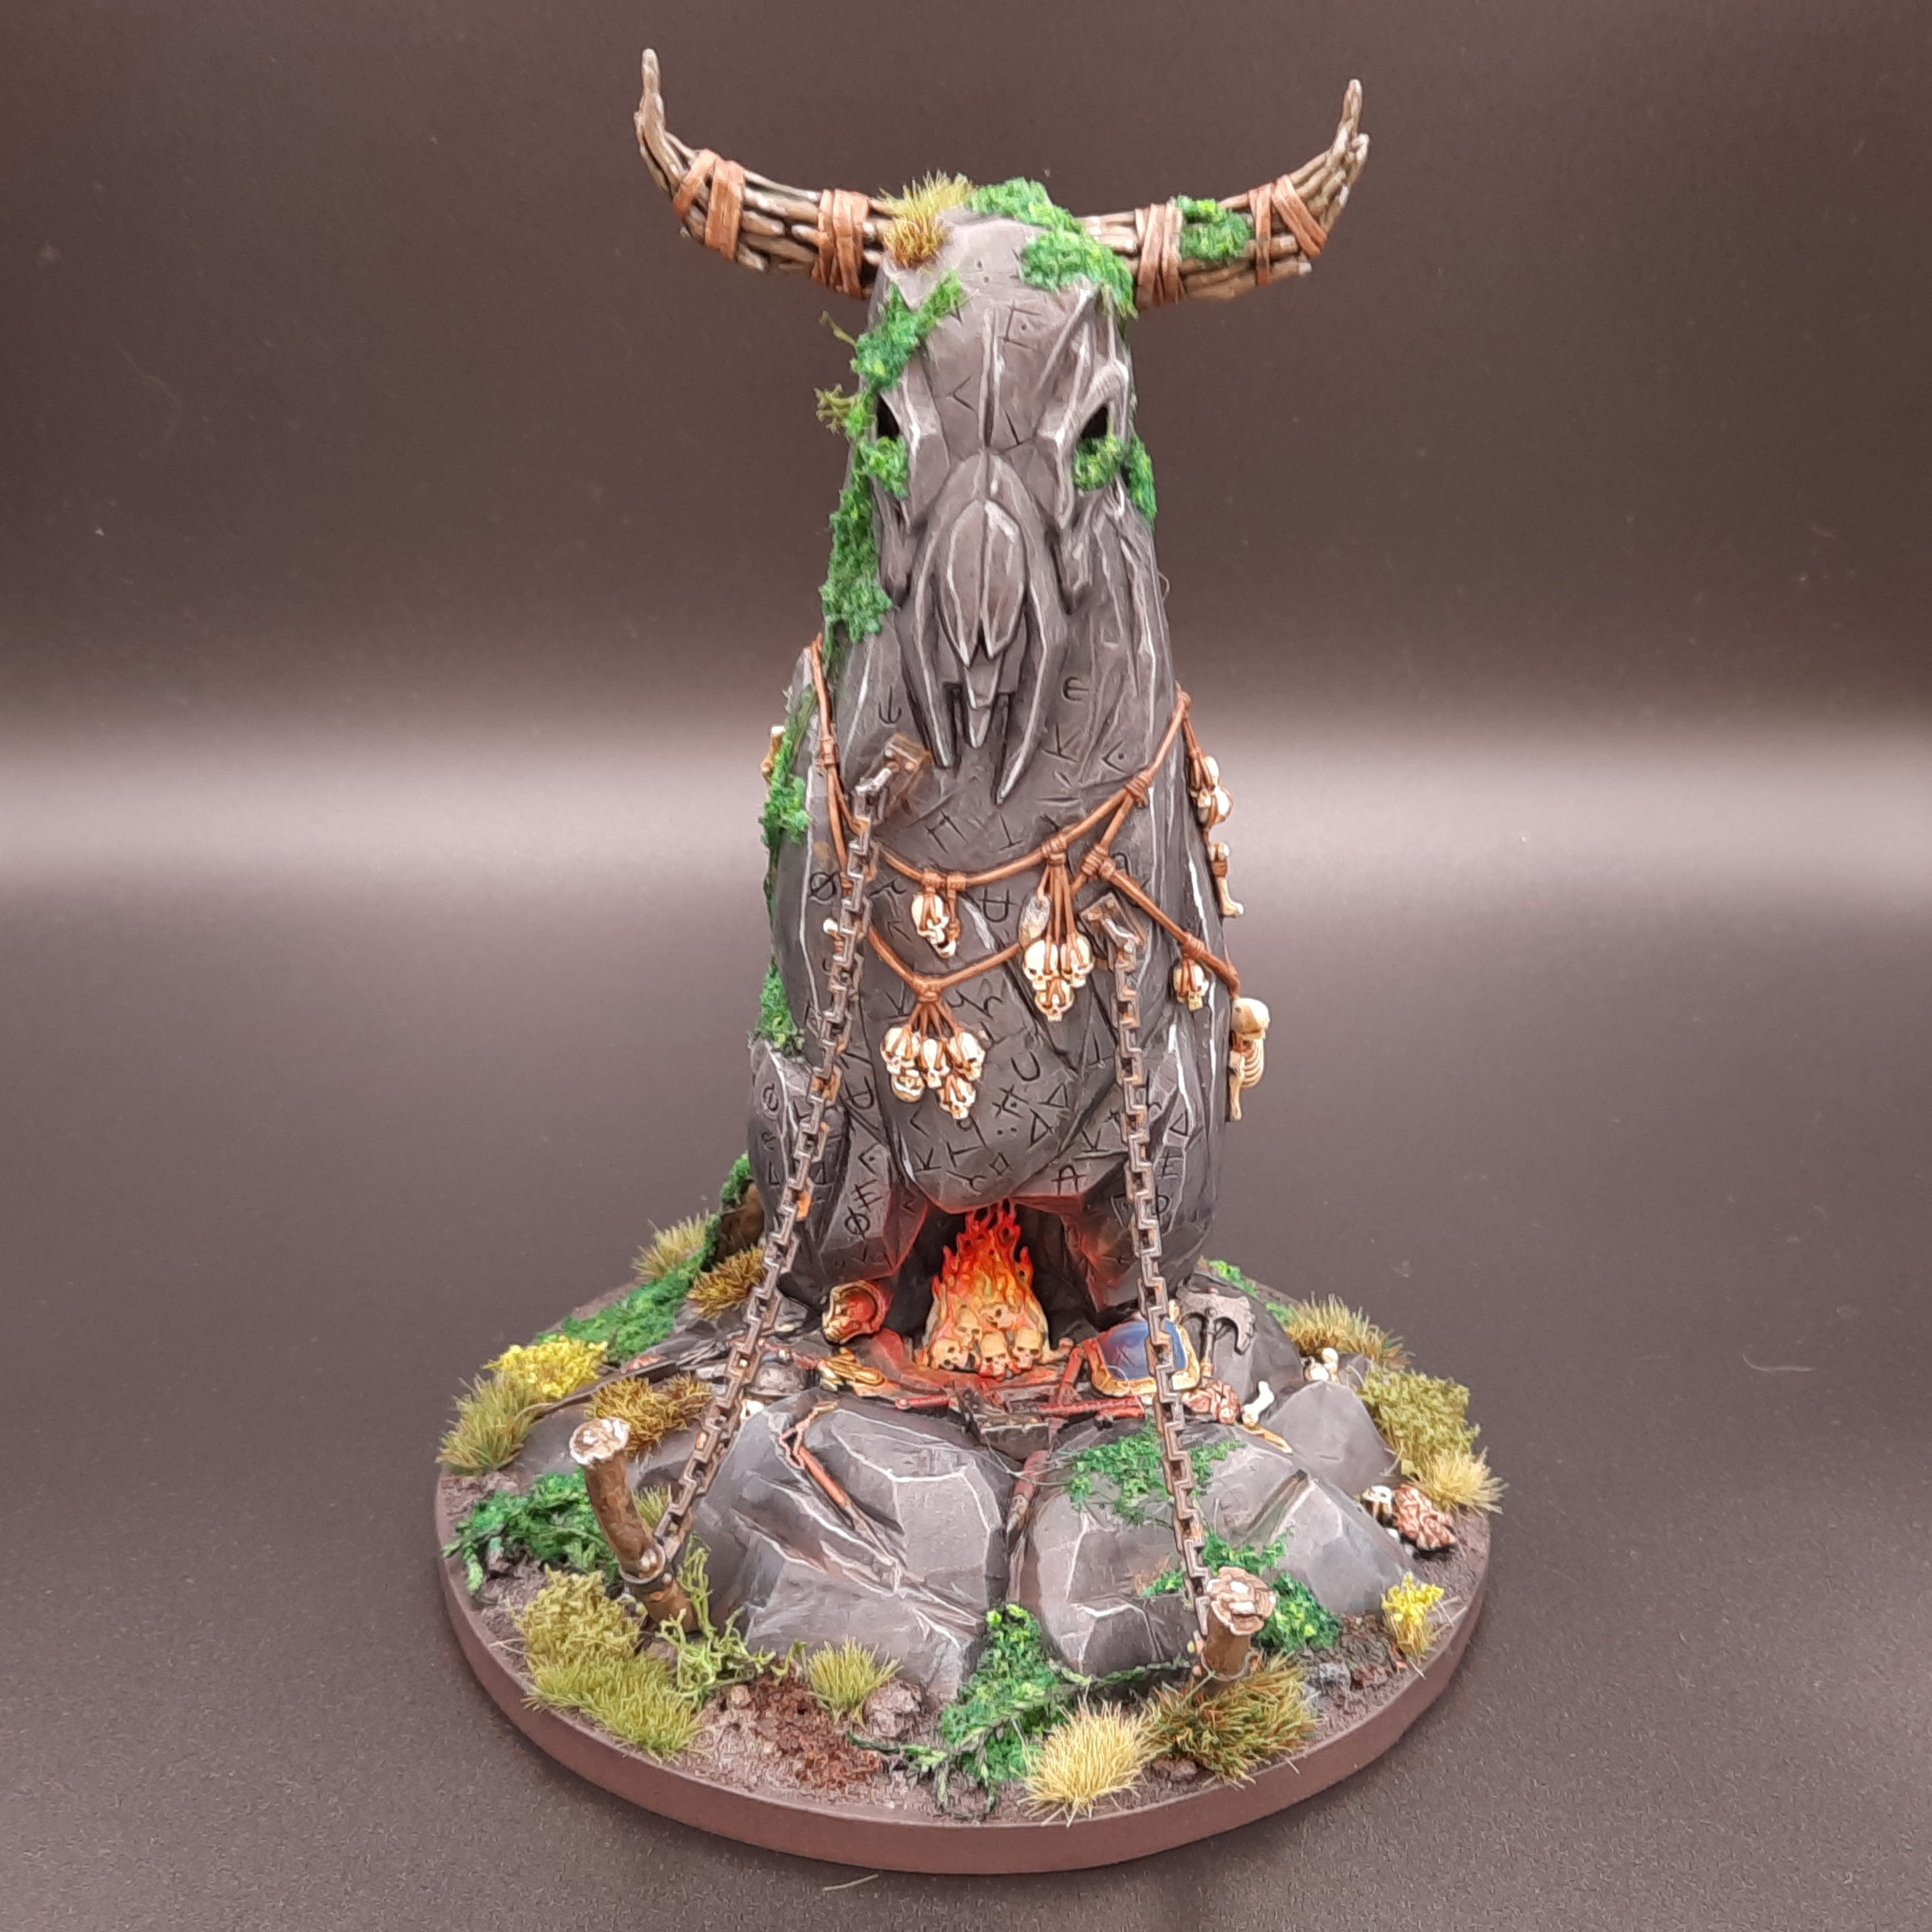 A model herdstone, an ancient monolith carved like a beast's skull